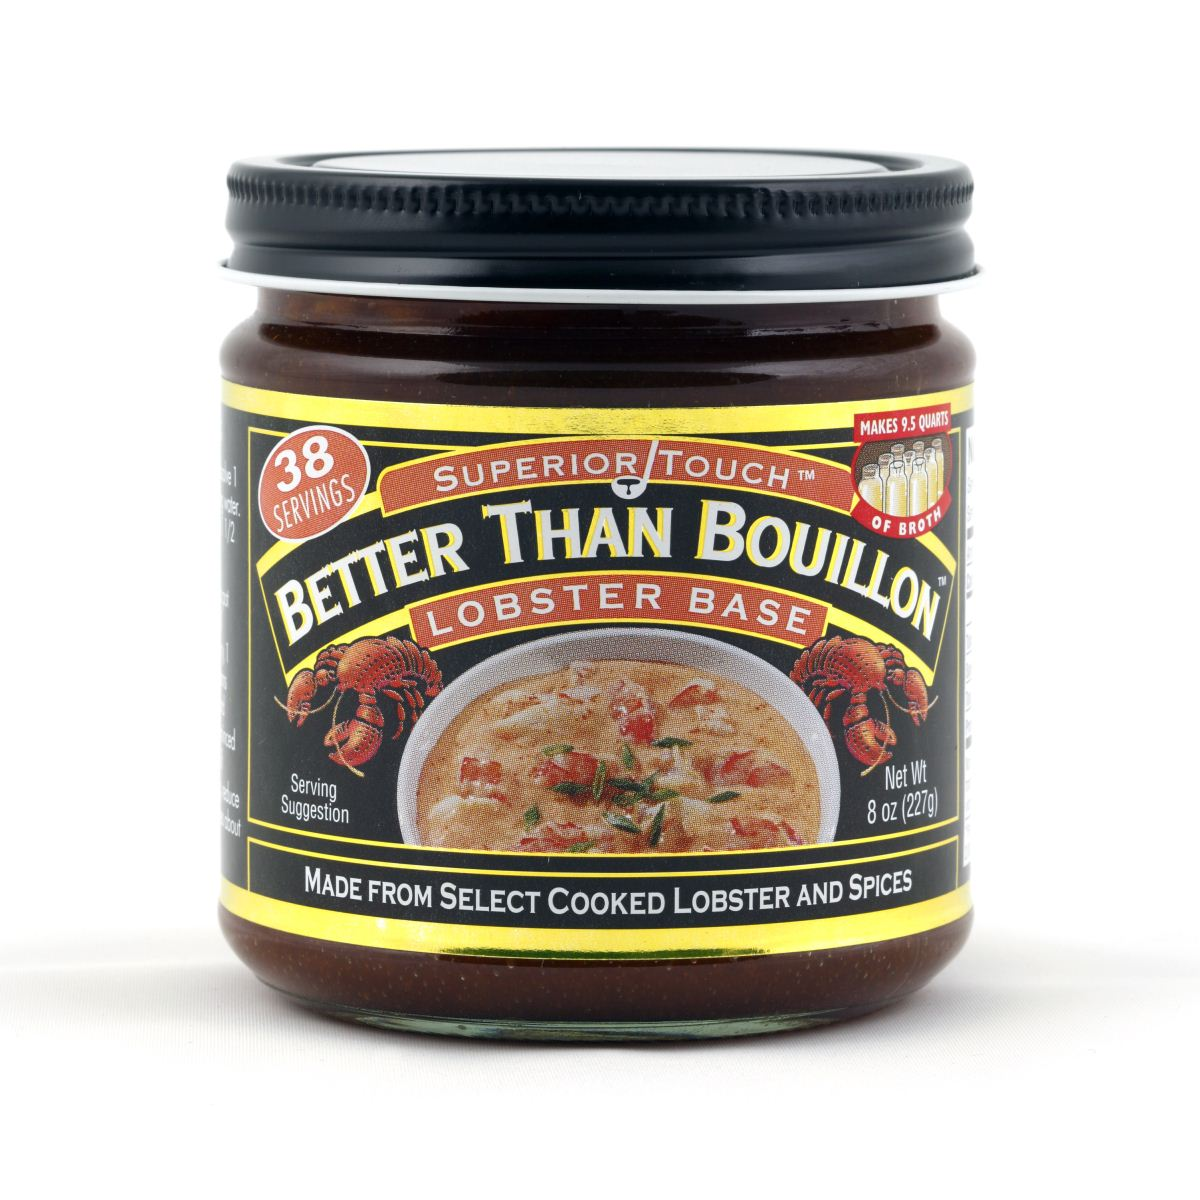 Бульон-основа из лобстеров Better Than Bouillon Lobster Base 227гр\8oz \Best before Feb 19 2022\ #098308002062